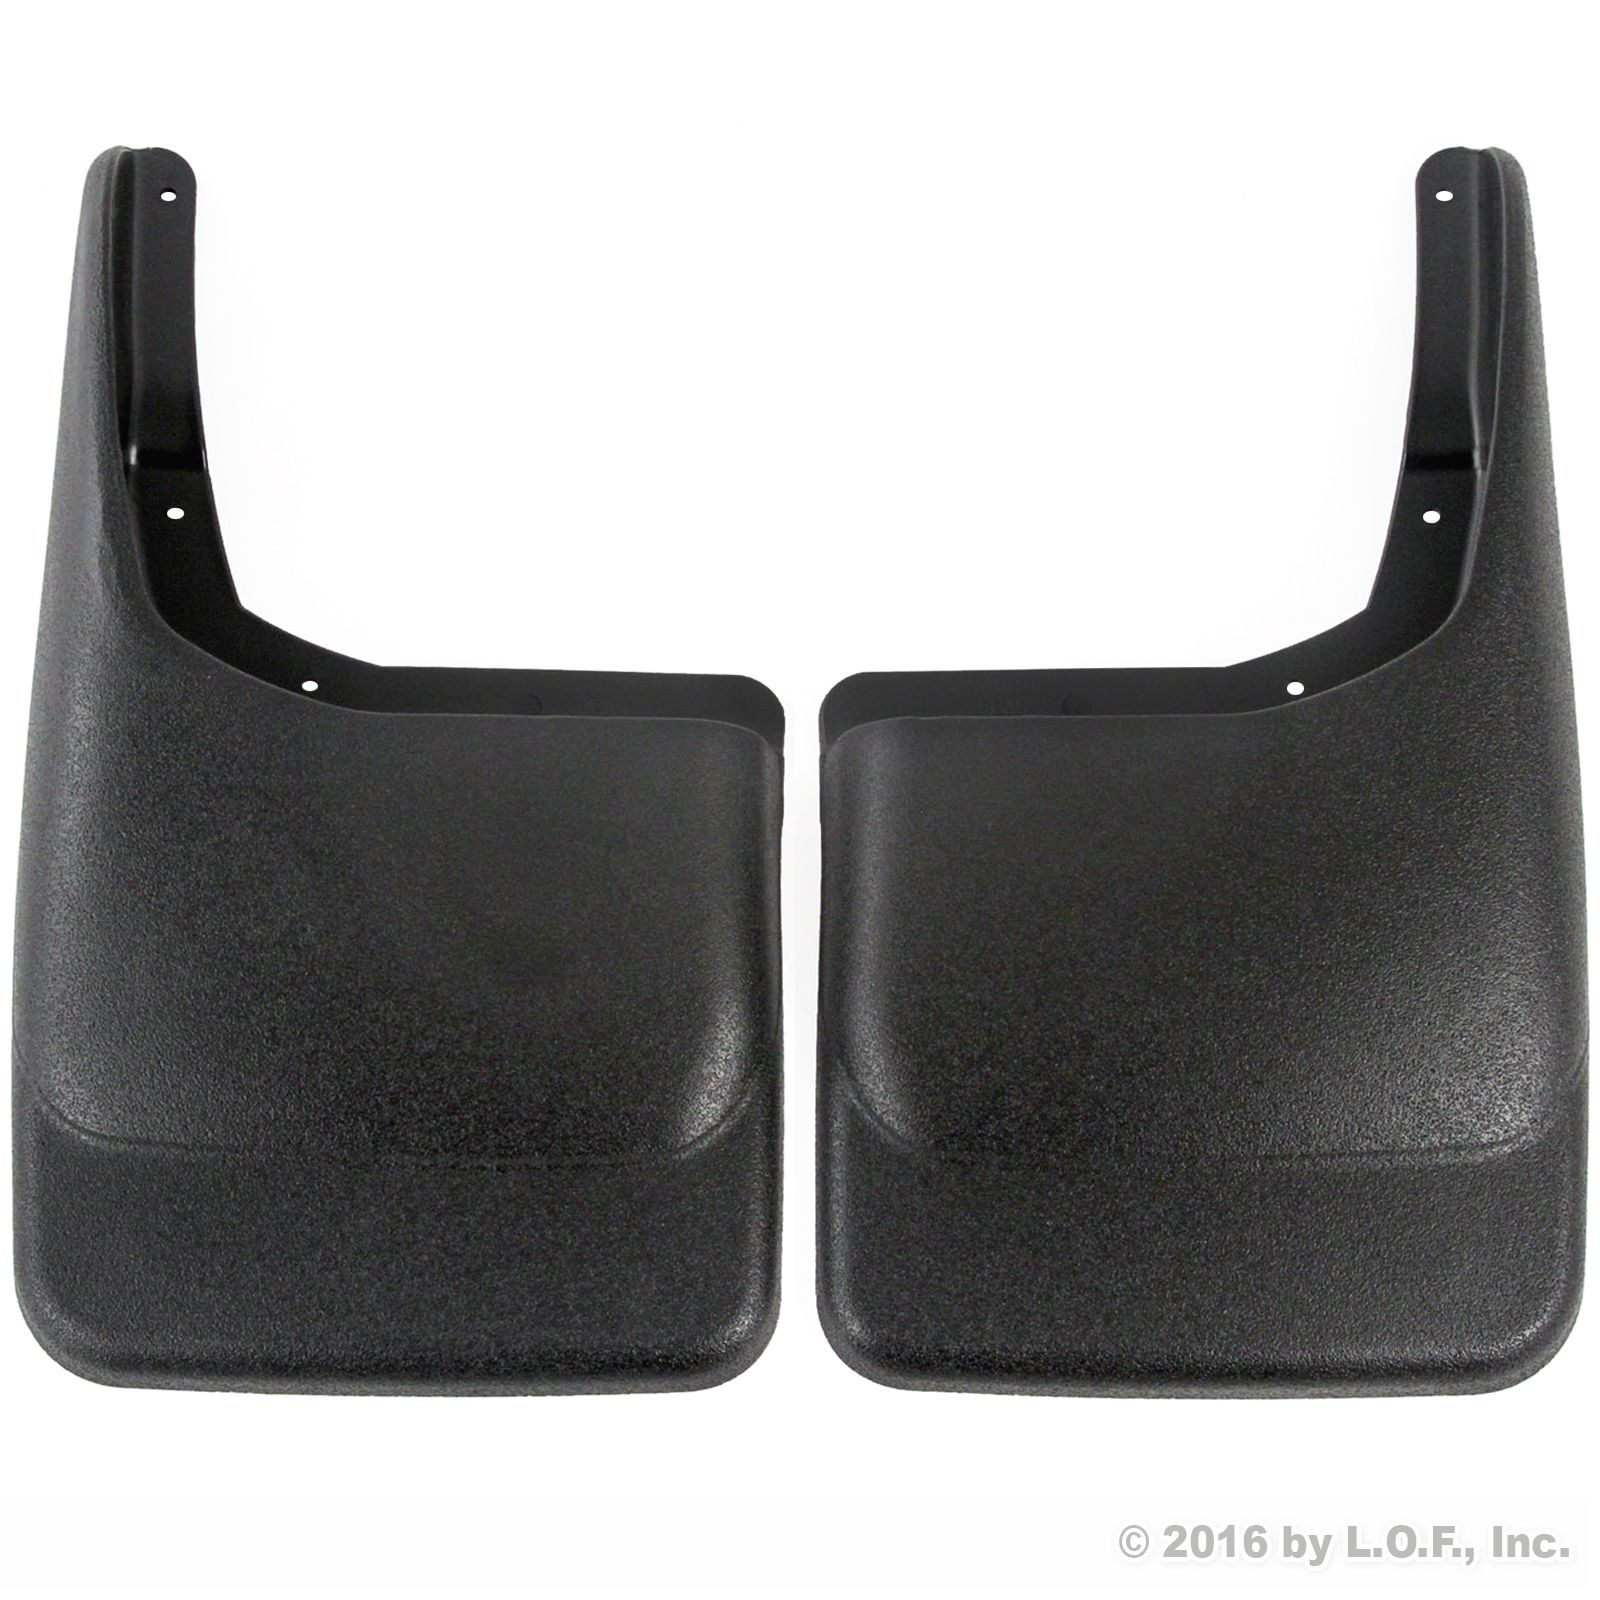 2004-2014 Ford F150 Mud Flaps Guards Splash Rear Molded 2pc Set (Without Fender Flares) by Red Hound Auto